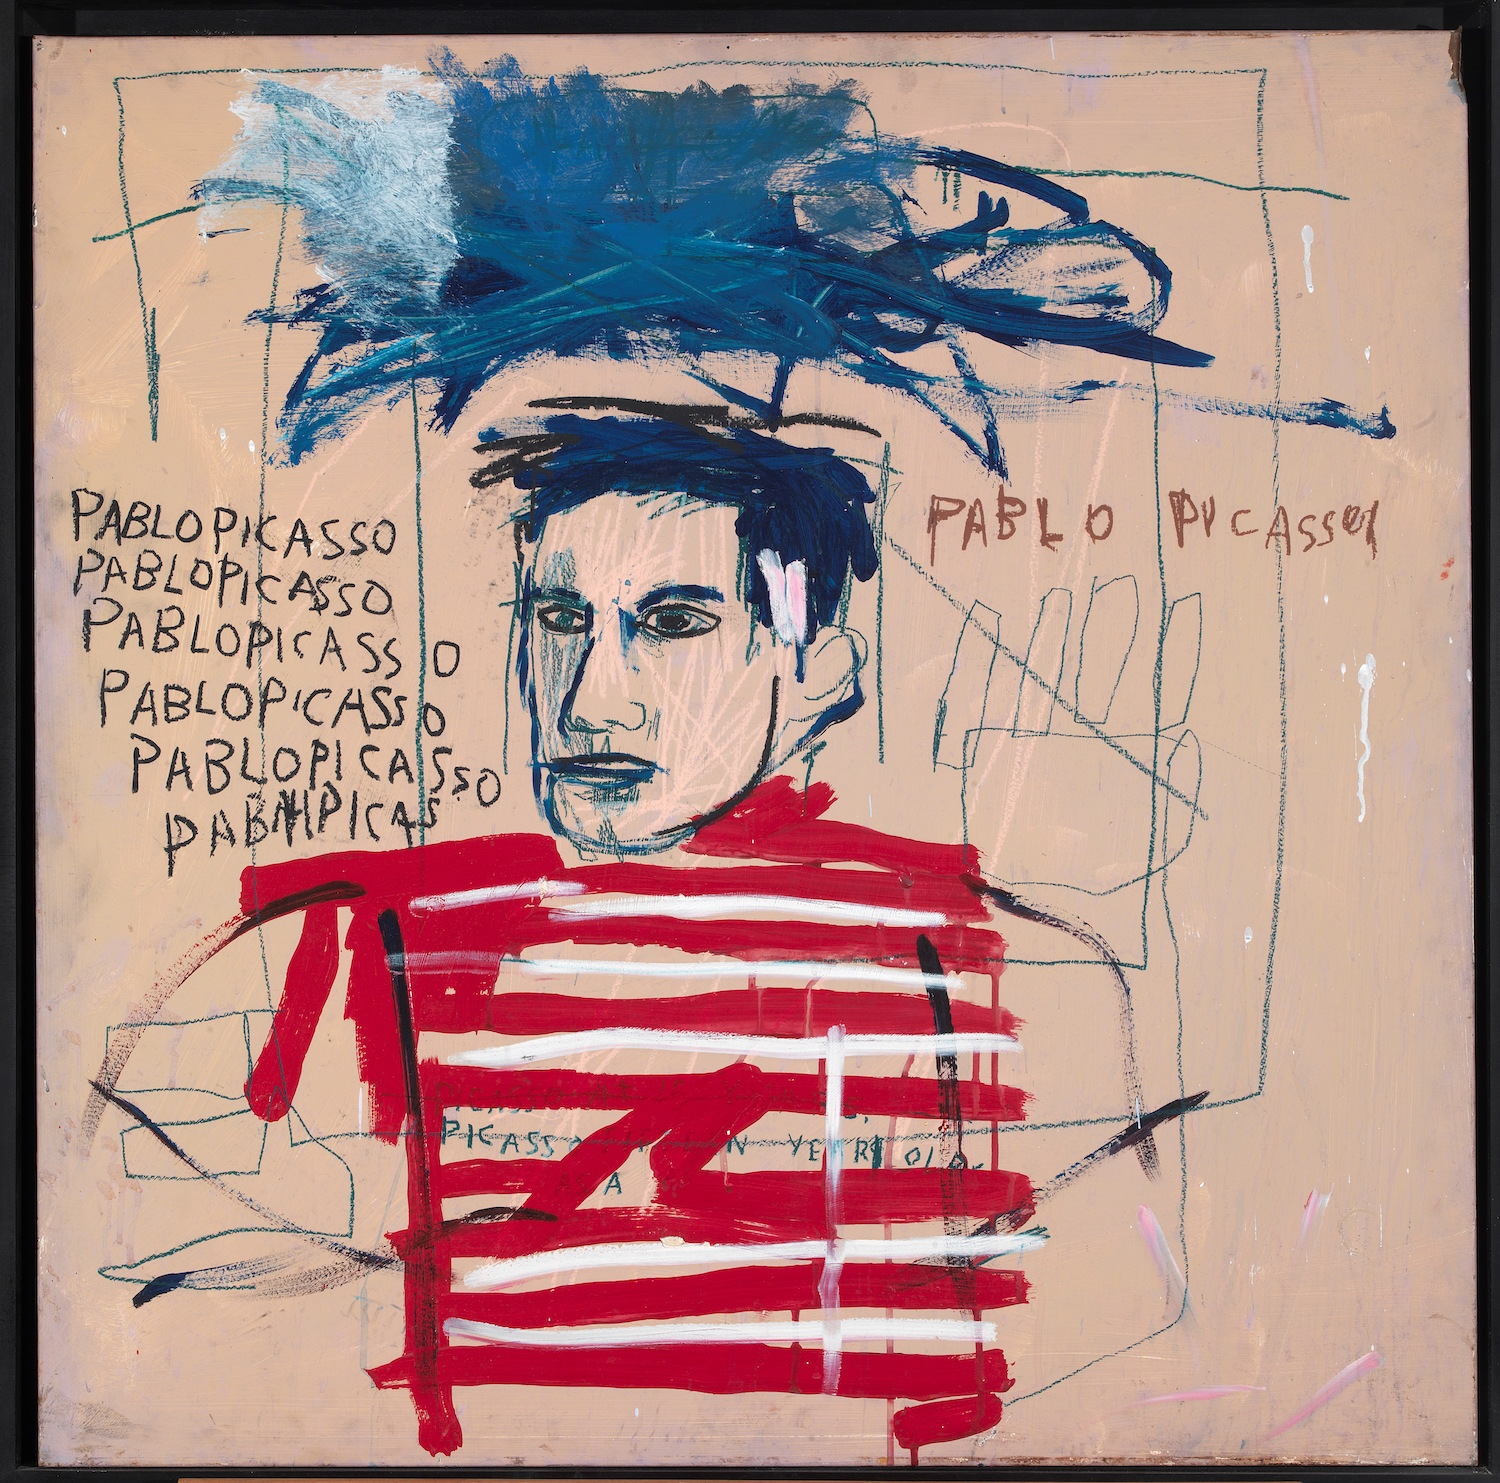 Jean-Michel Basquiat, Untitled (Pablo Picasso), 1984, Private collection